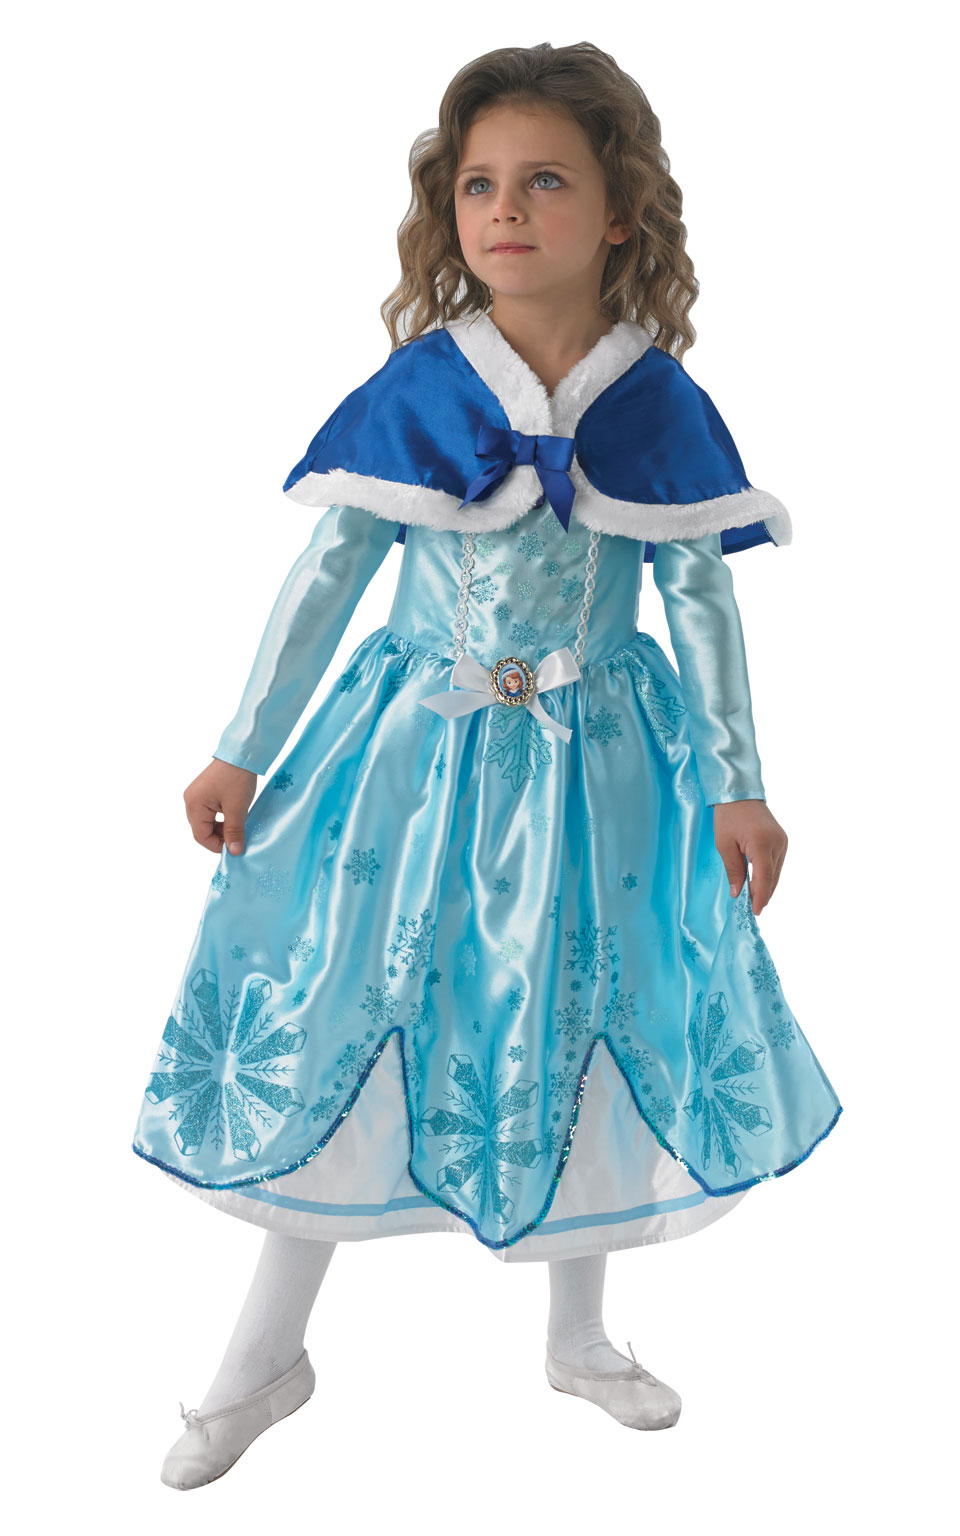 DaHeng Girls Princess Green Anna Fancy Dress Costume ReliBeauty Little Girls G Retro Princess Anna Fancy Dress Costume out of 5 stars $ American Vogue Elsa Coronation Dress Costume + Cape + Gloves + Tiara Crown Amazon Rapids Fun stories for kids on the go/5().